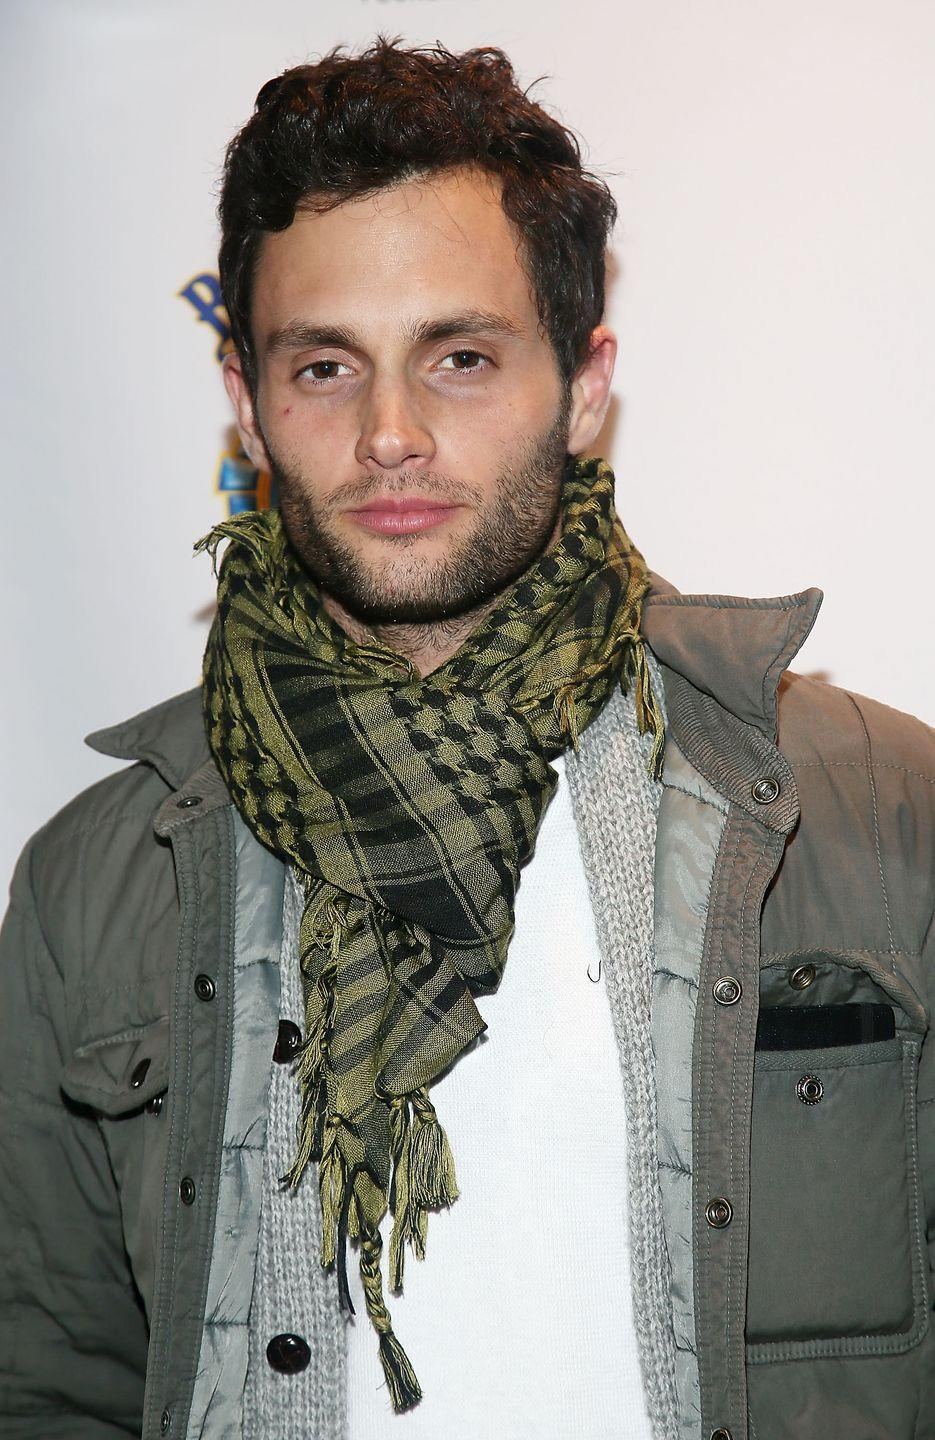 """<p>Though Badgley didn't directly state he hated his character on <em>Gossip Girl,</em> he did reference the show and its flaws on multiple occasions. He <a href=""""https://twitter.com/PennBadgley/status/558480546121392128"""" rel=""""nofollow noopener"""" target=""""_blank"""" data-ylk=""""slk:tweeted"""" class=""""link rapid-noclick-resp"""">tweeted</a> in 2015, """"Lol s--t we are *reclining* on New York City. I'm posted up like its a futon. Talk about an image of white privilege."""" He also told <a href=""""https://www.salon.com/2013/04/30/a_gossip_girl_star_becomes_jeff_buckley_i_was_not_his_most_rabid_fan/"""" rel=""""nofollow noopener"""" target=""""_blank"""" data-ylk=""""slk:Salon"""" class=""""link rapid-noclick-resp"""">Salon</a> back in 2013, """"To be proud of something is a really nice feeling...and it's a new feeling. It's something that I wanna keep going with."""" (<em>Gossip Girl</em> aired from 2007–2012.) </p>"""